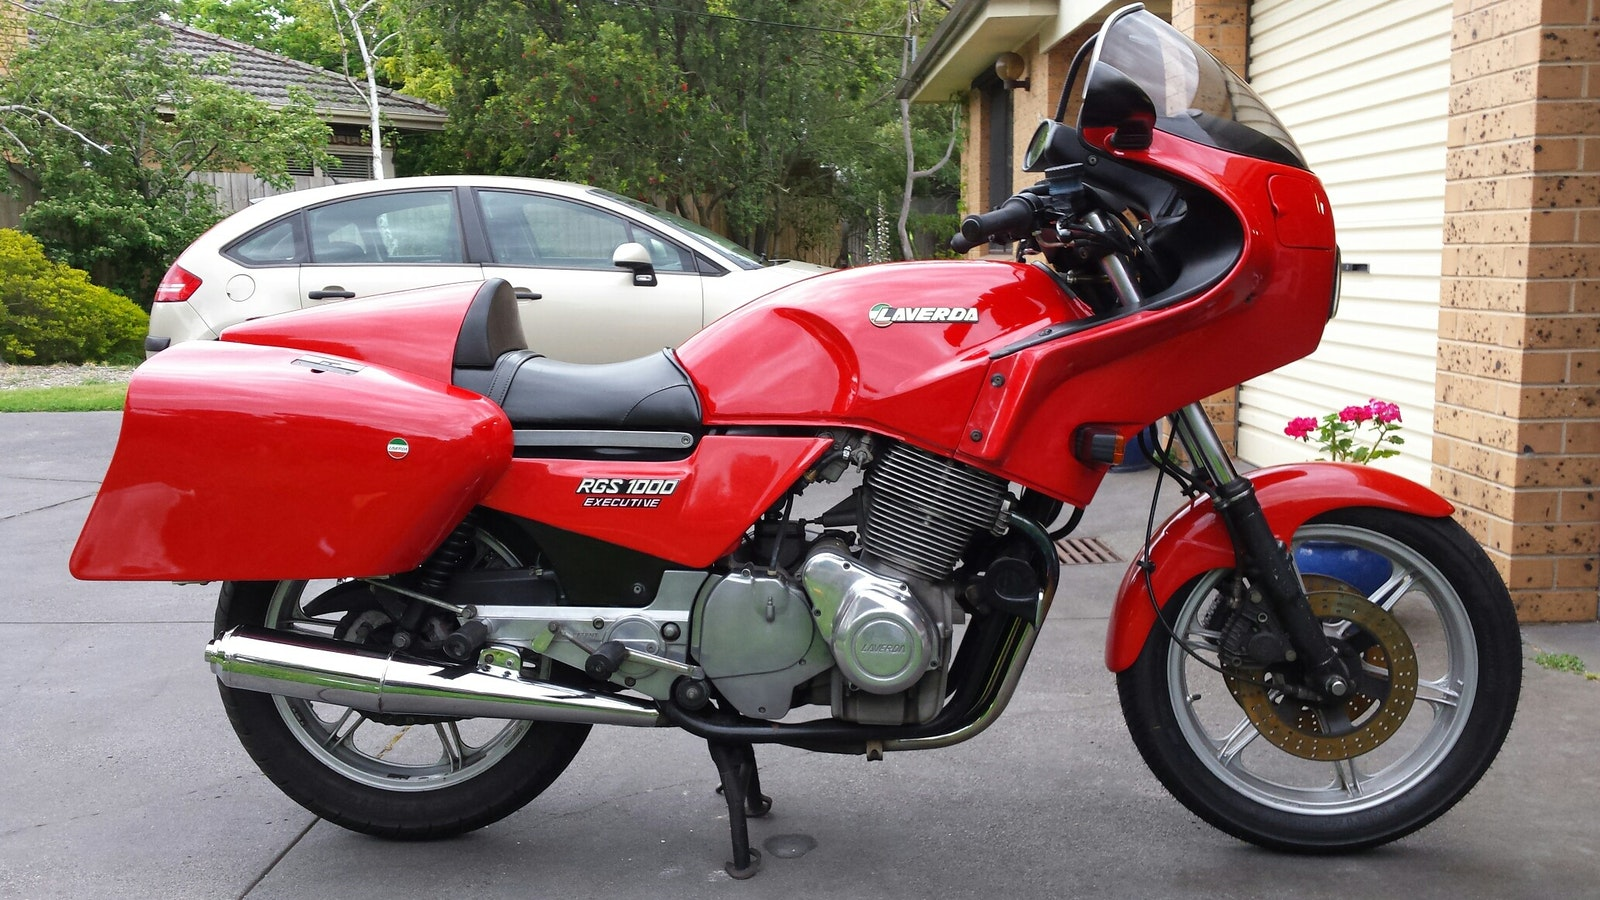 Laverda RGS 1000 Executive